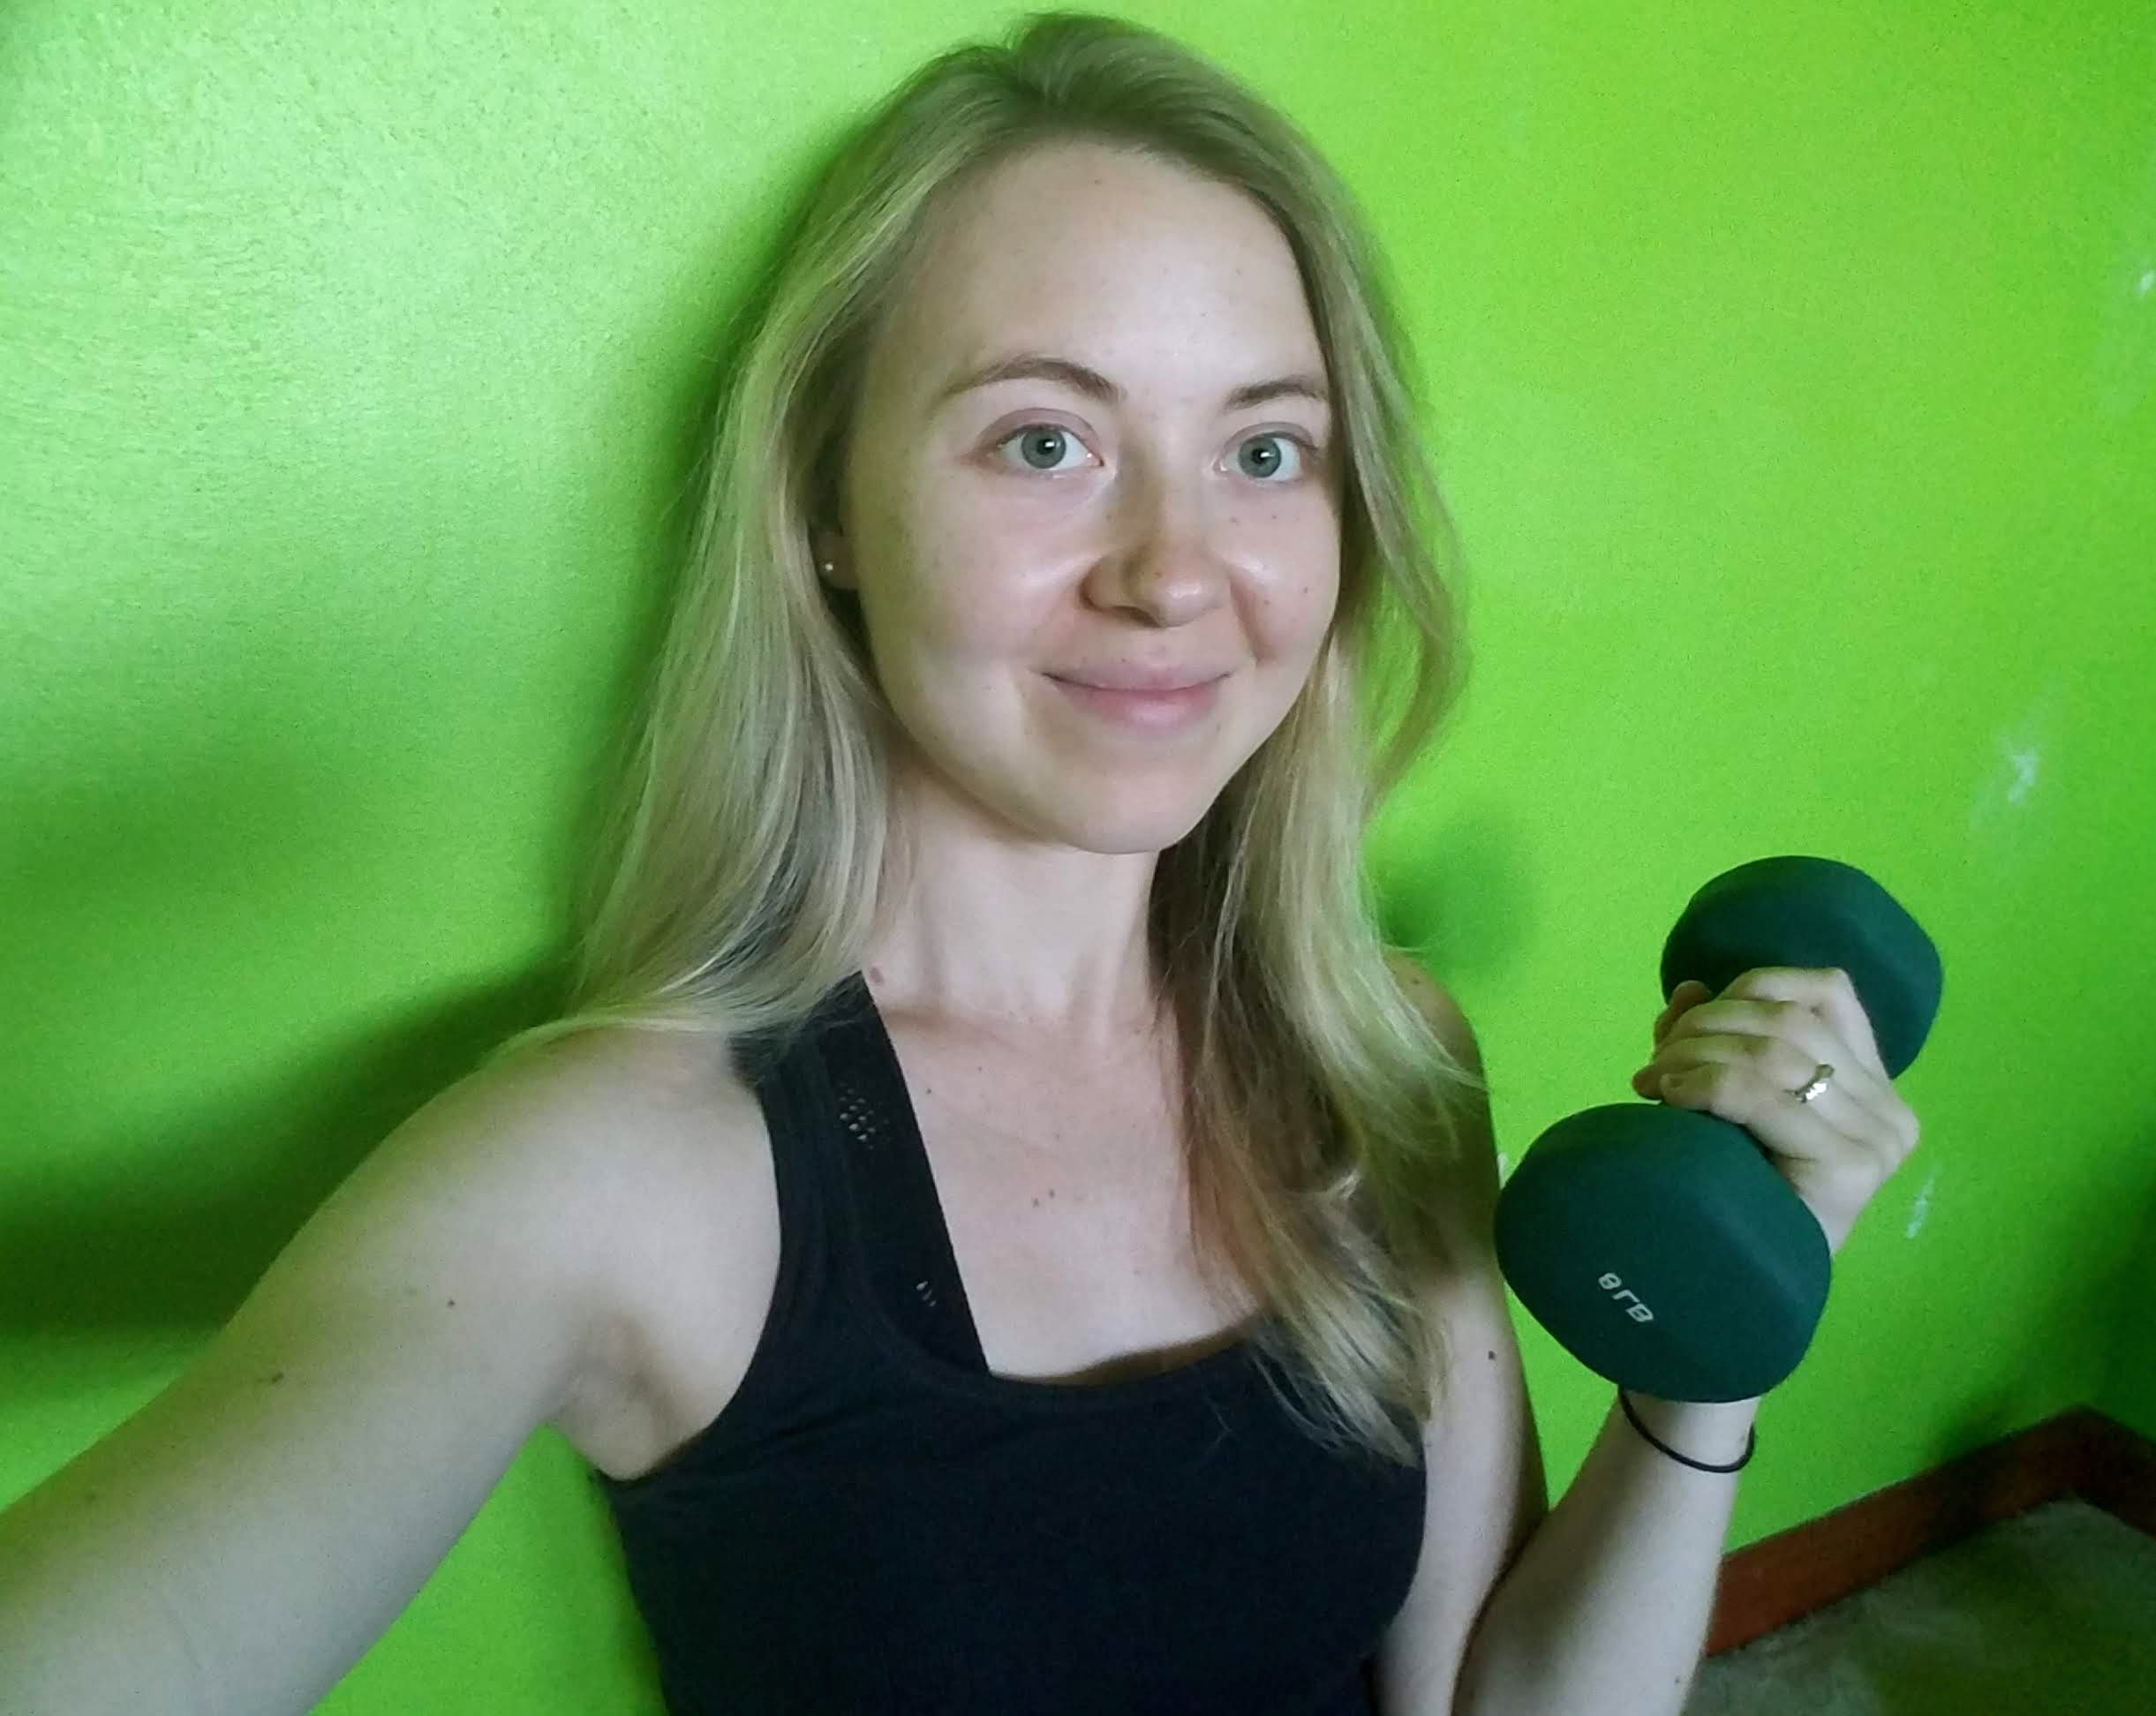 biceps, triceps, and shoulders upper body workout